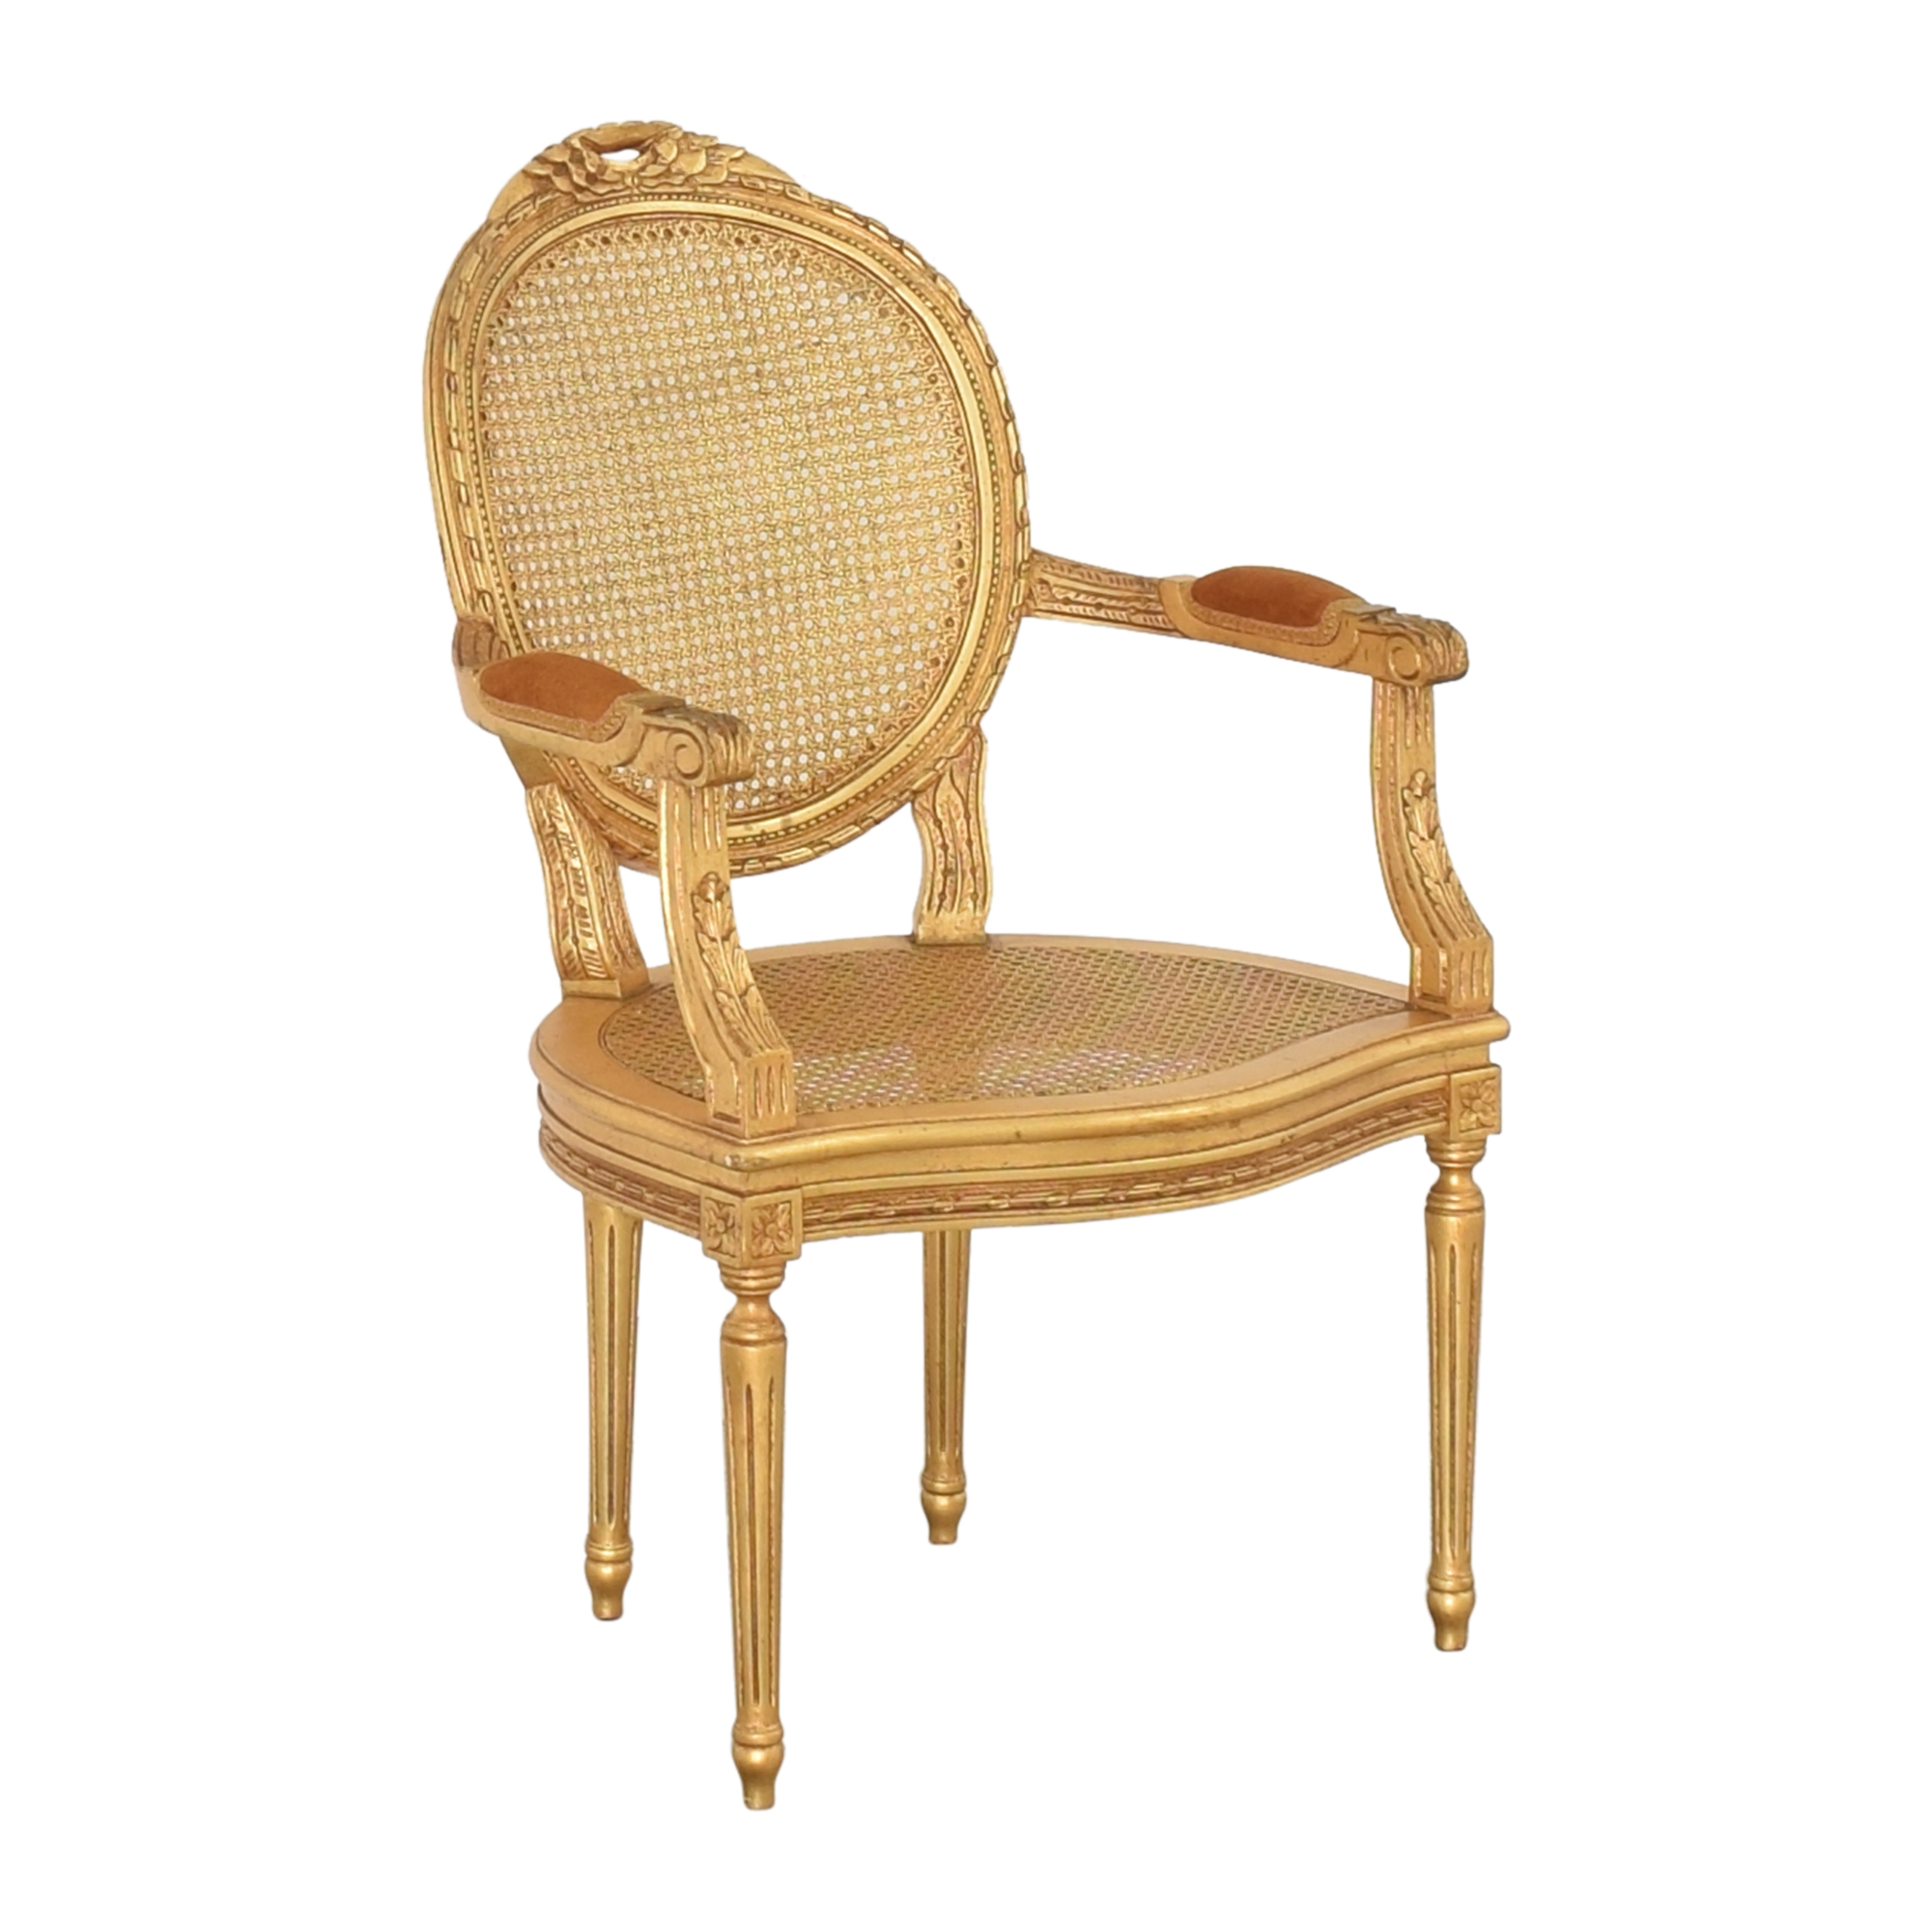 Decorative Crafts Decorative Crafts Louis XVI Fauteuil Armchair ma